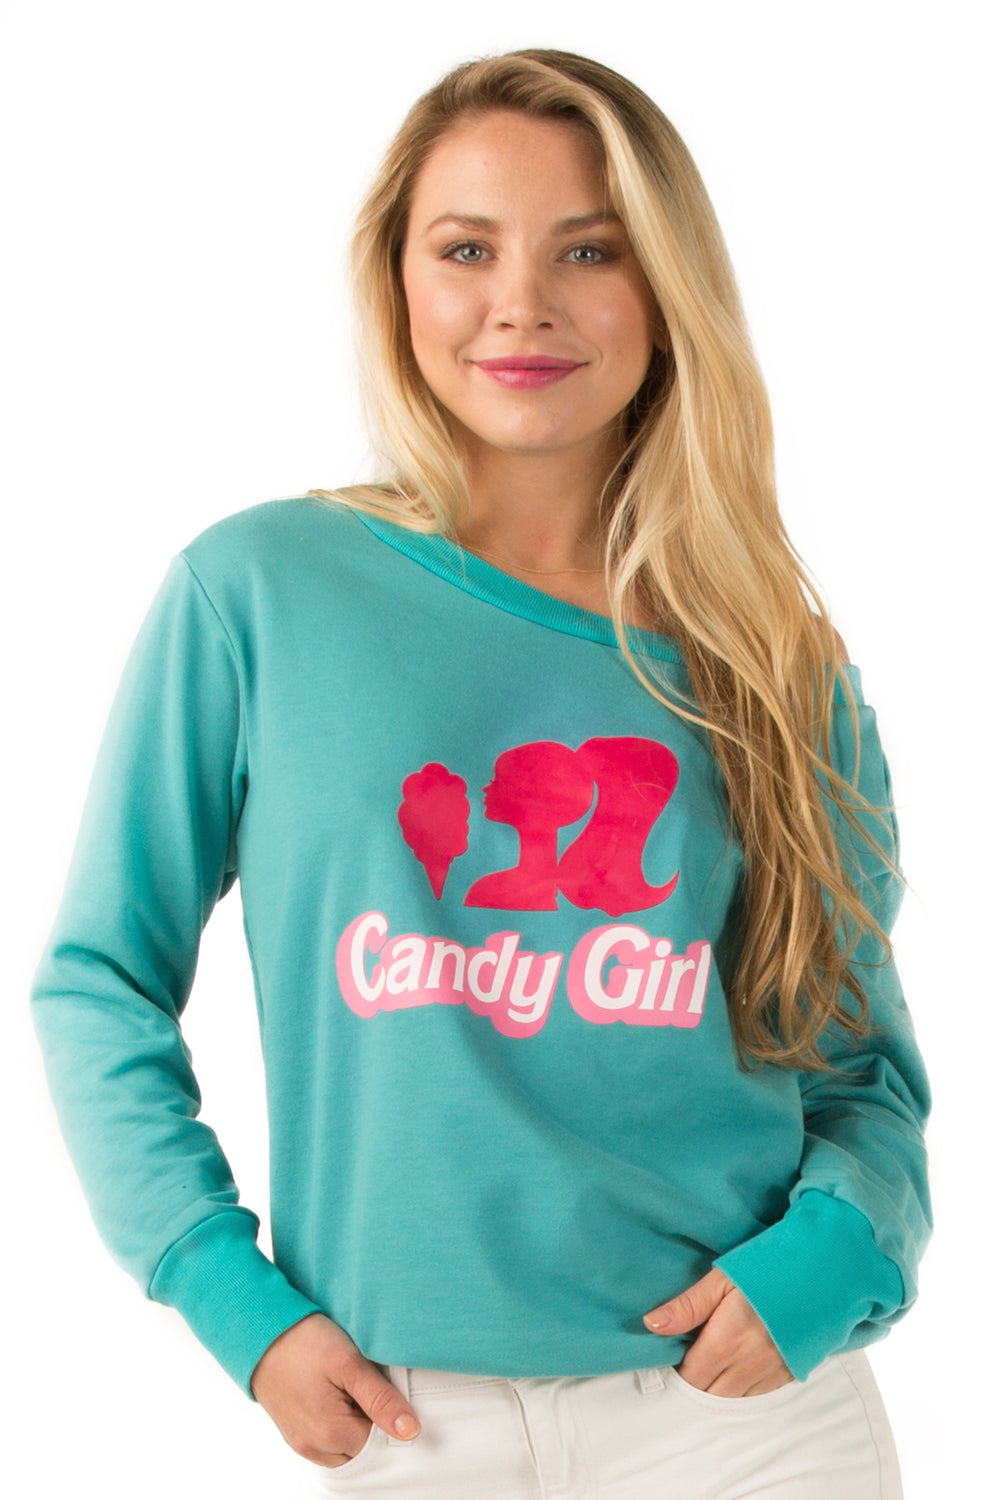 Candy Girl Sweatshirt